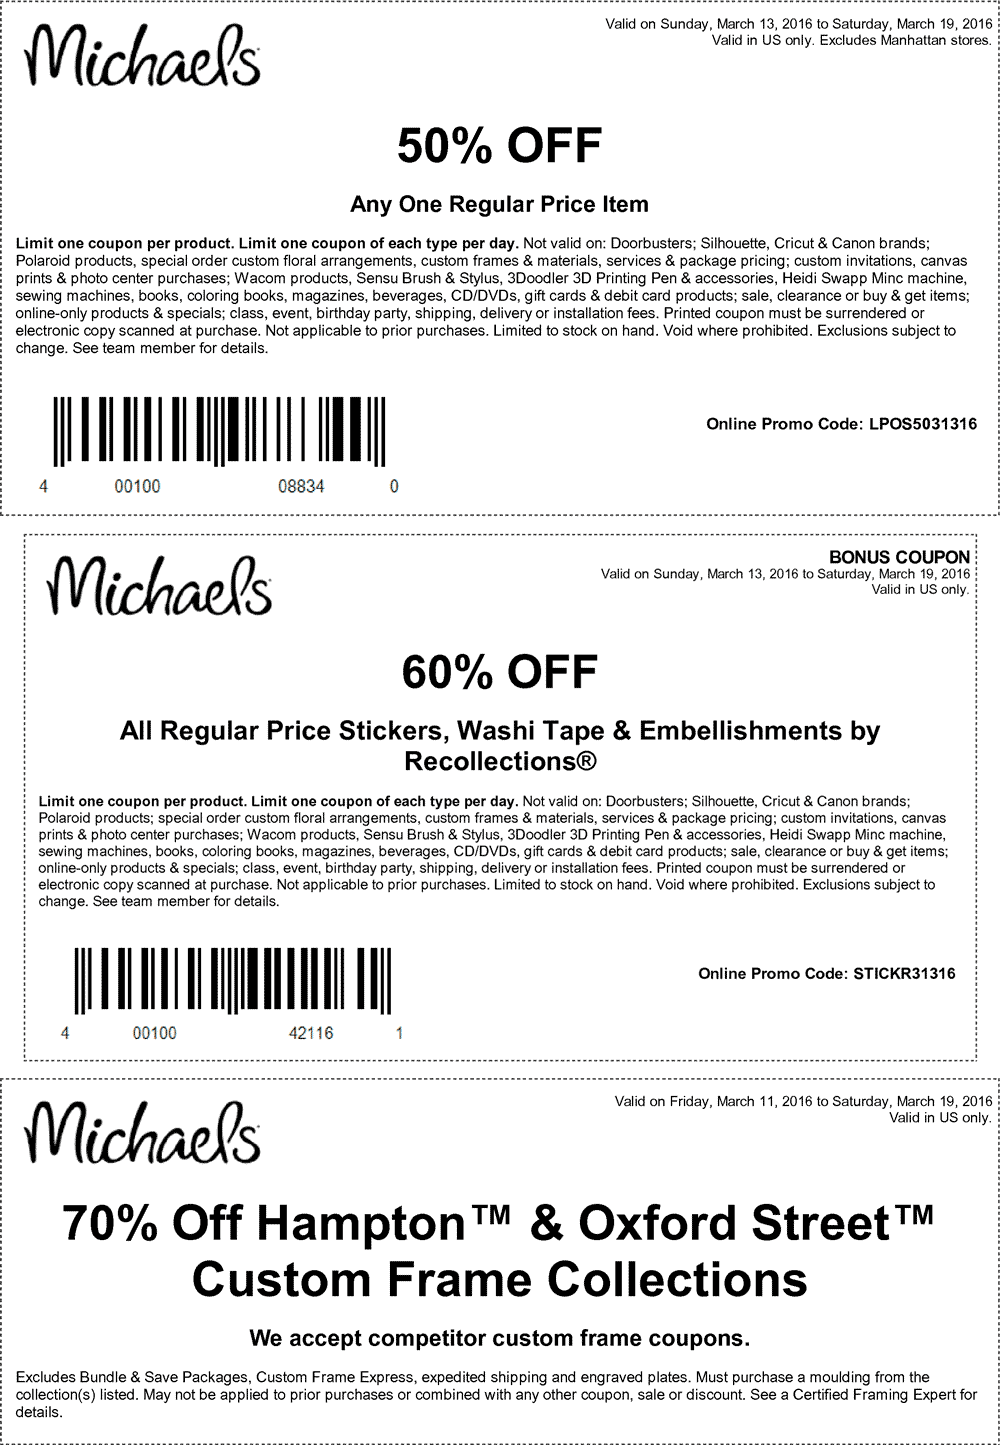 Michaels Coupon April 2017 50% off a single item at Michaels, or online via promo code LPOS5031316